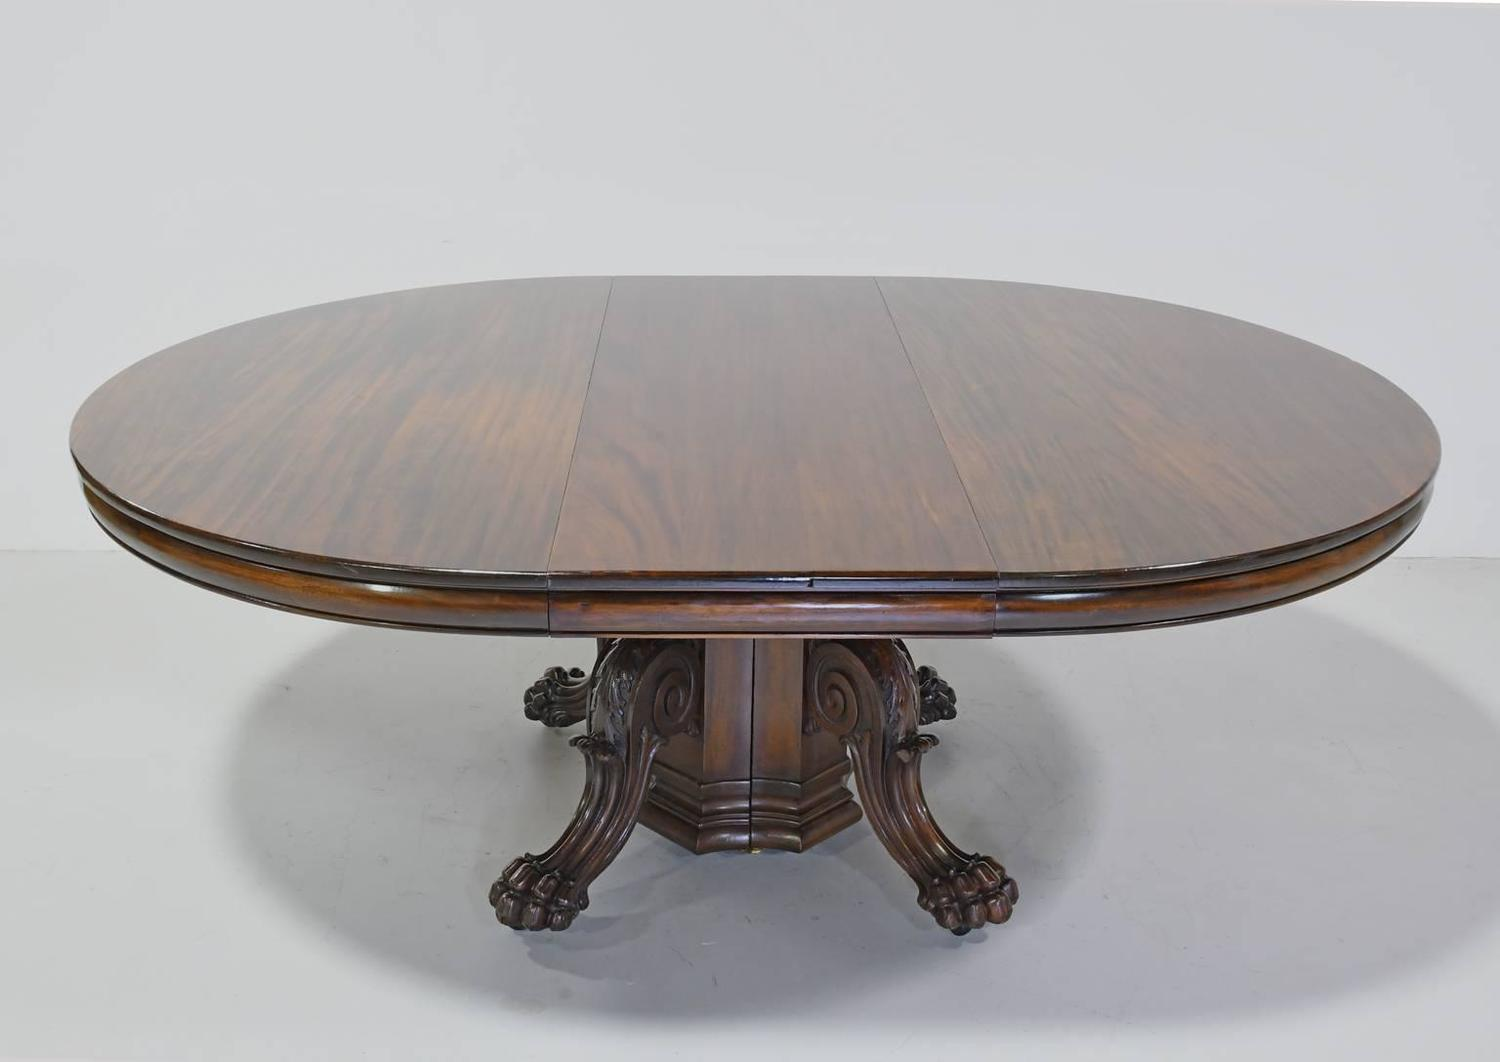 round american empire center pedestal dining table with extension leaves for sale at 1stdibs. Black Bedroom Furniture Sets. Home Design Ideas